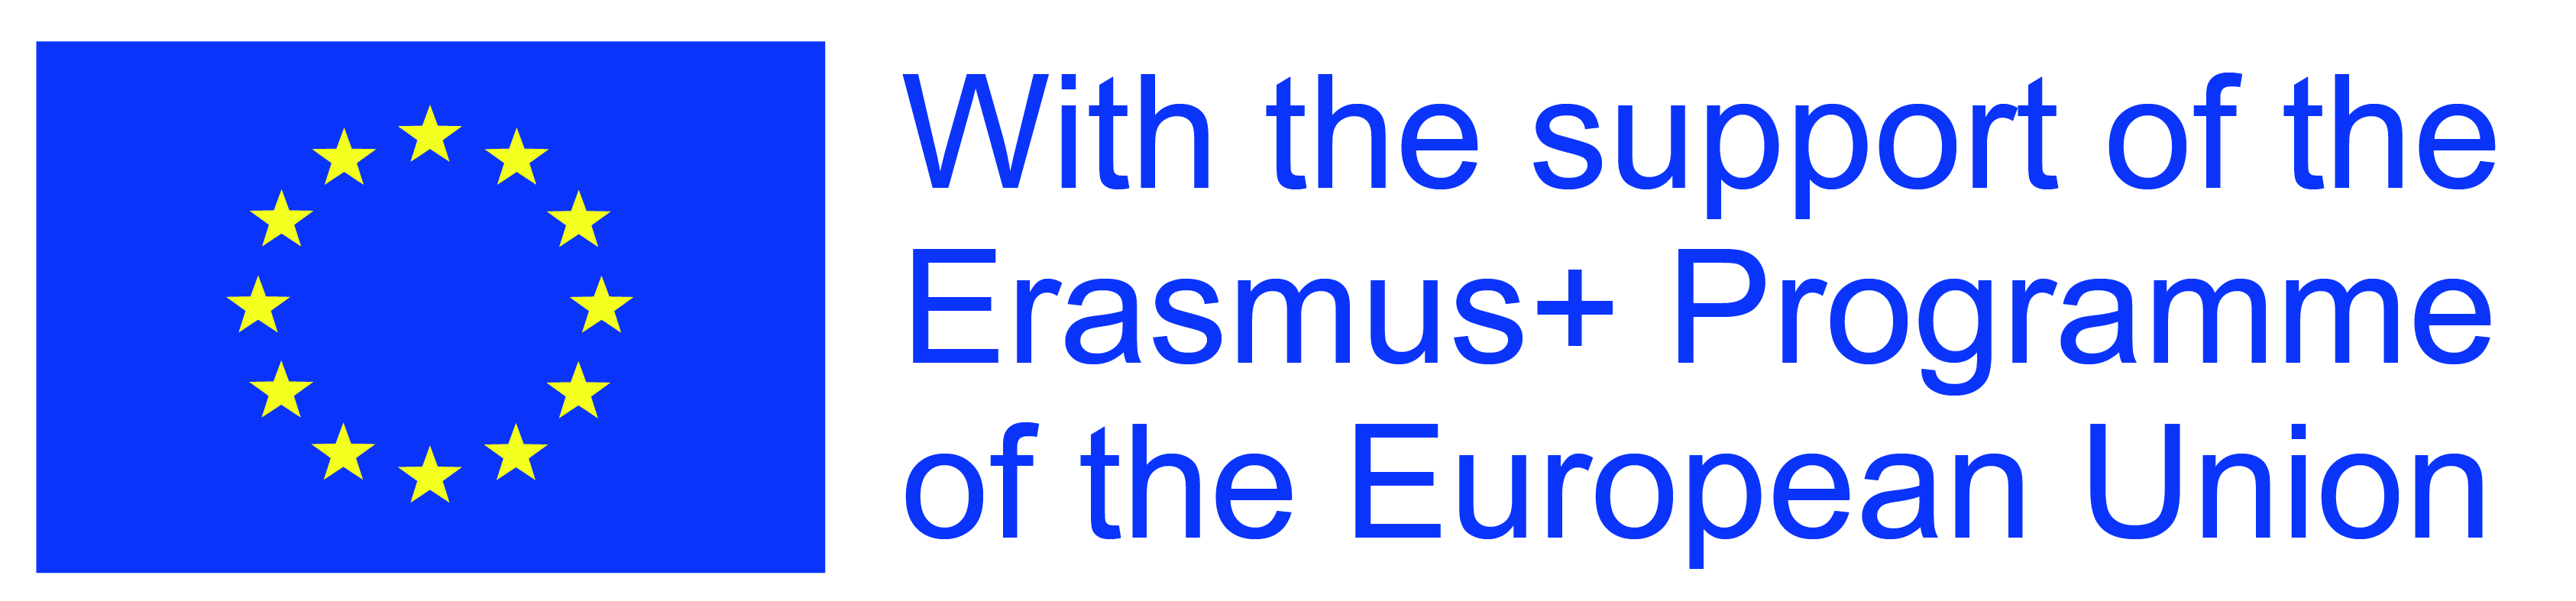 With the support of the Erasmus+ Programe of the European Union